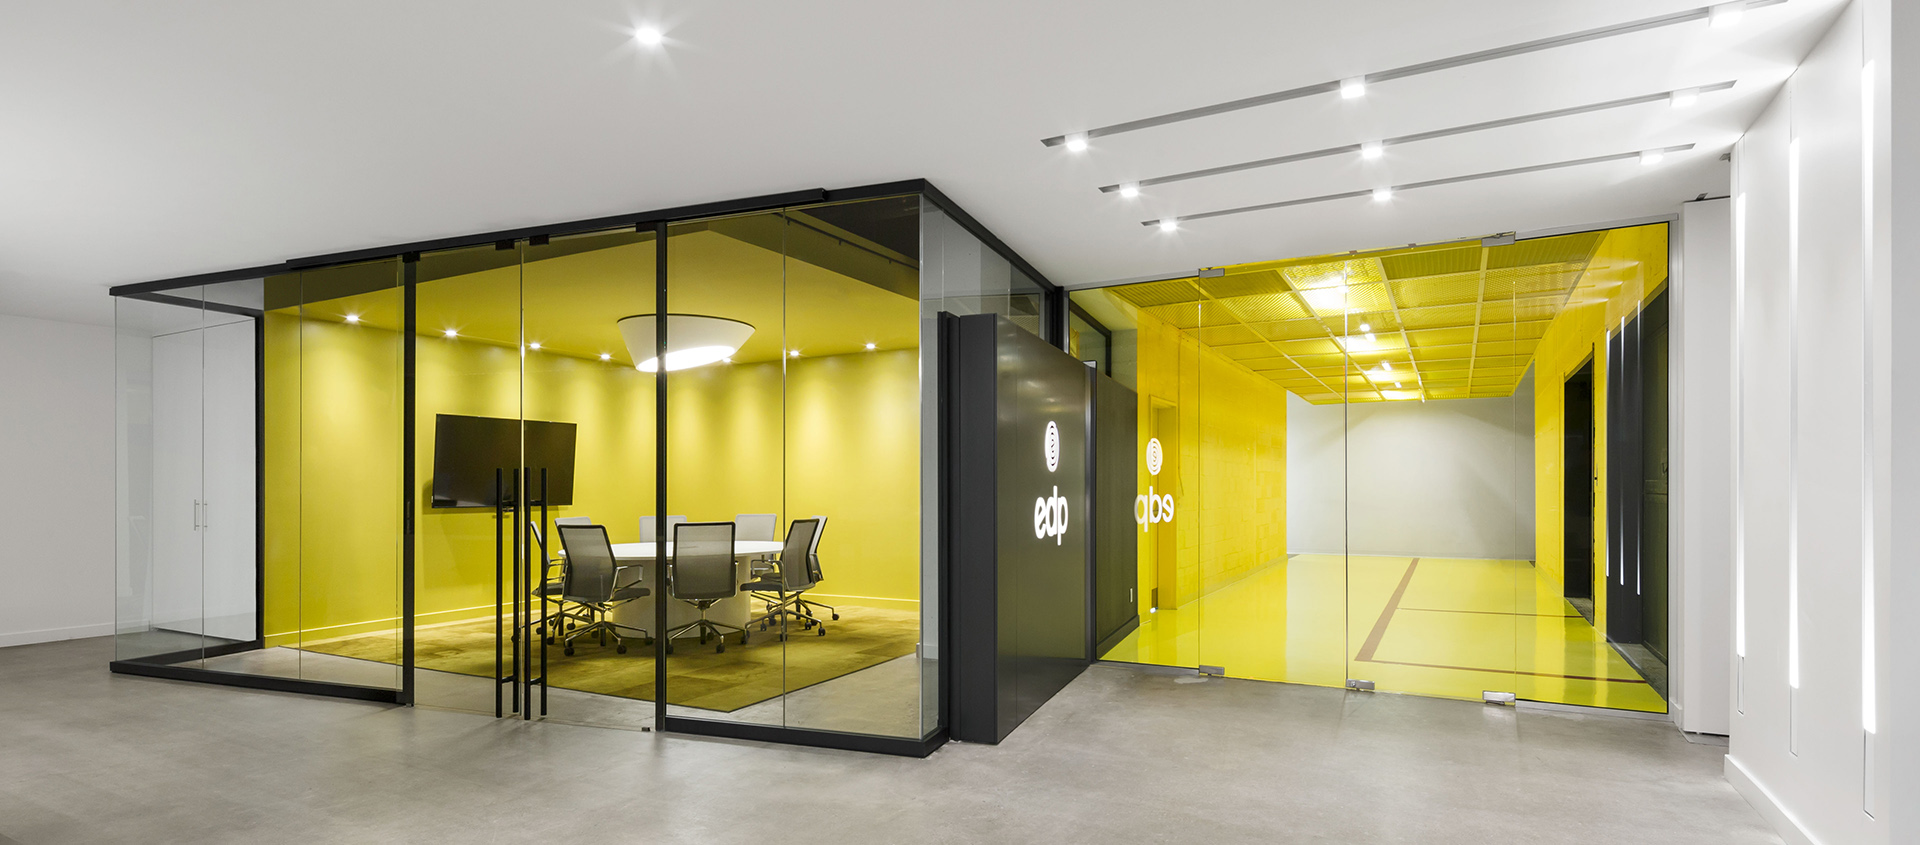 Product Highlight: moodwall P2 Frameless Glass Wall System